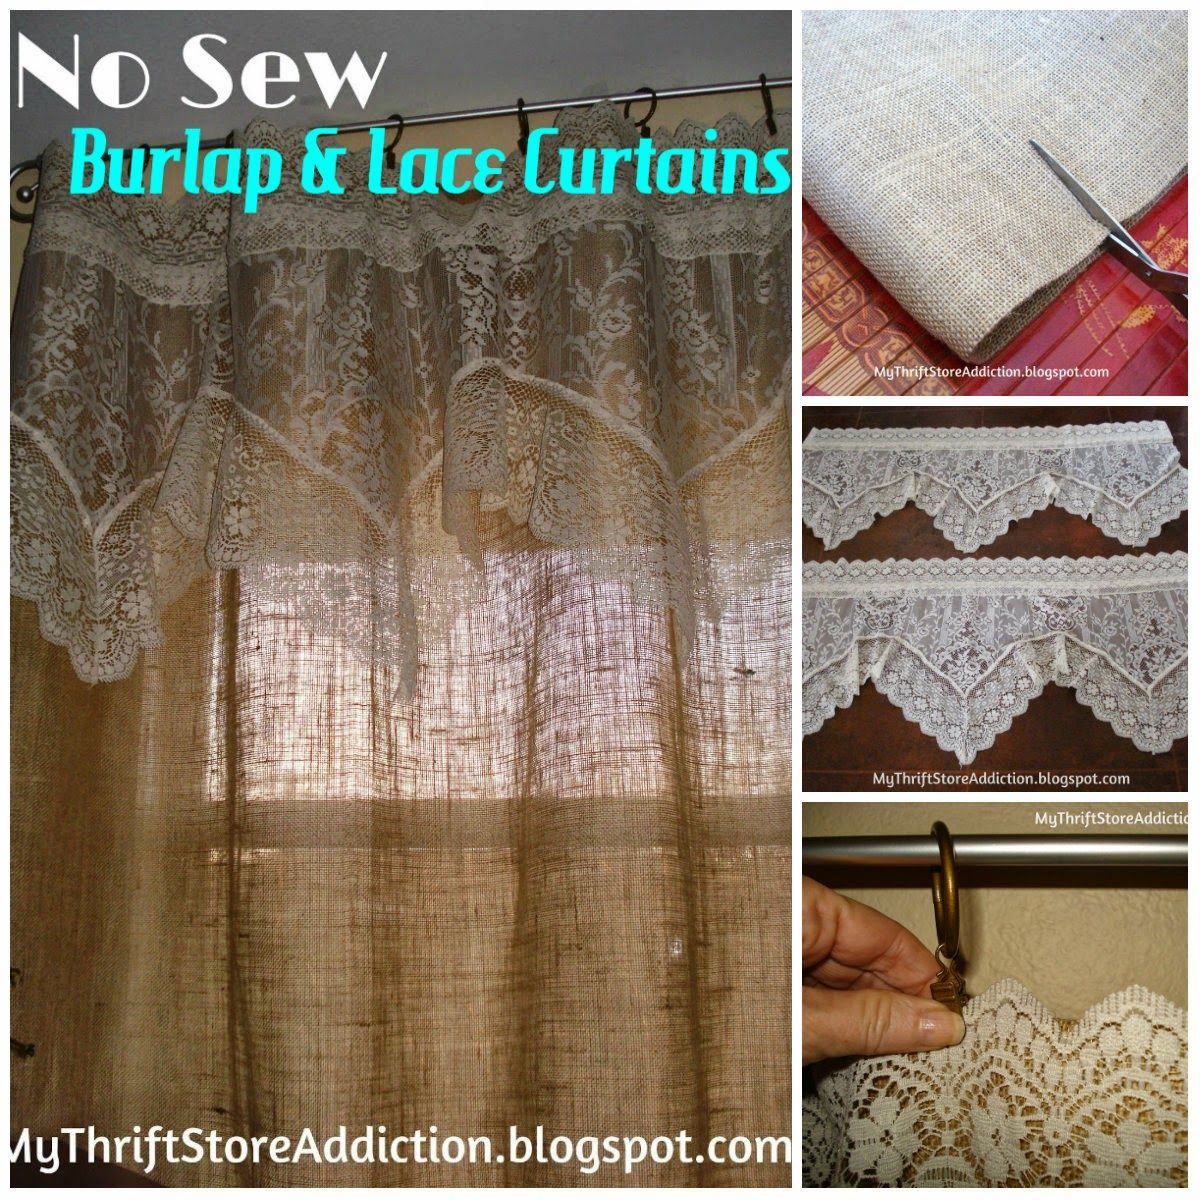 Refresh Your Home No Sew Burlap And Lace Curtains Lace Curtains Diy Curtains Curtains And Draperies